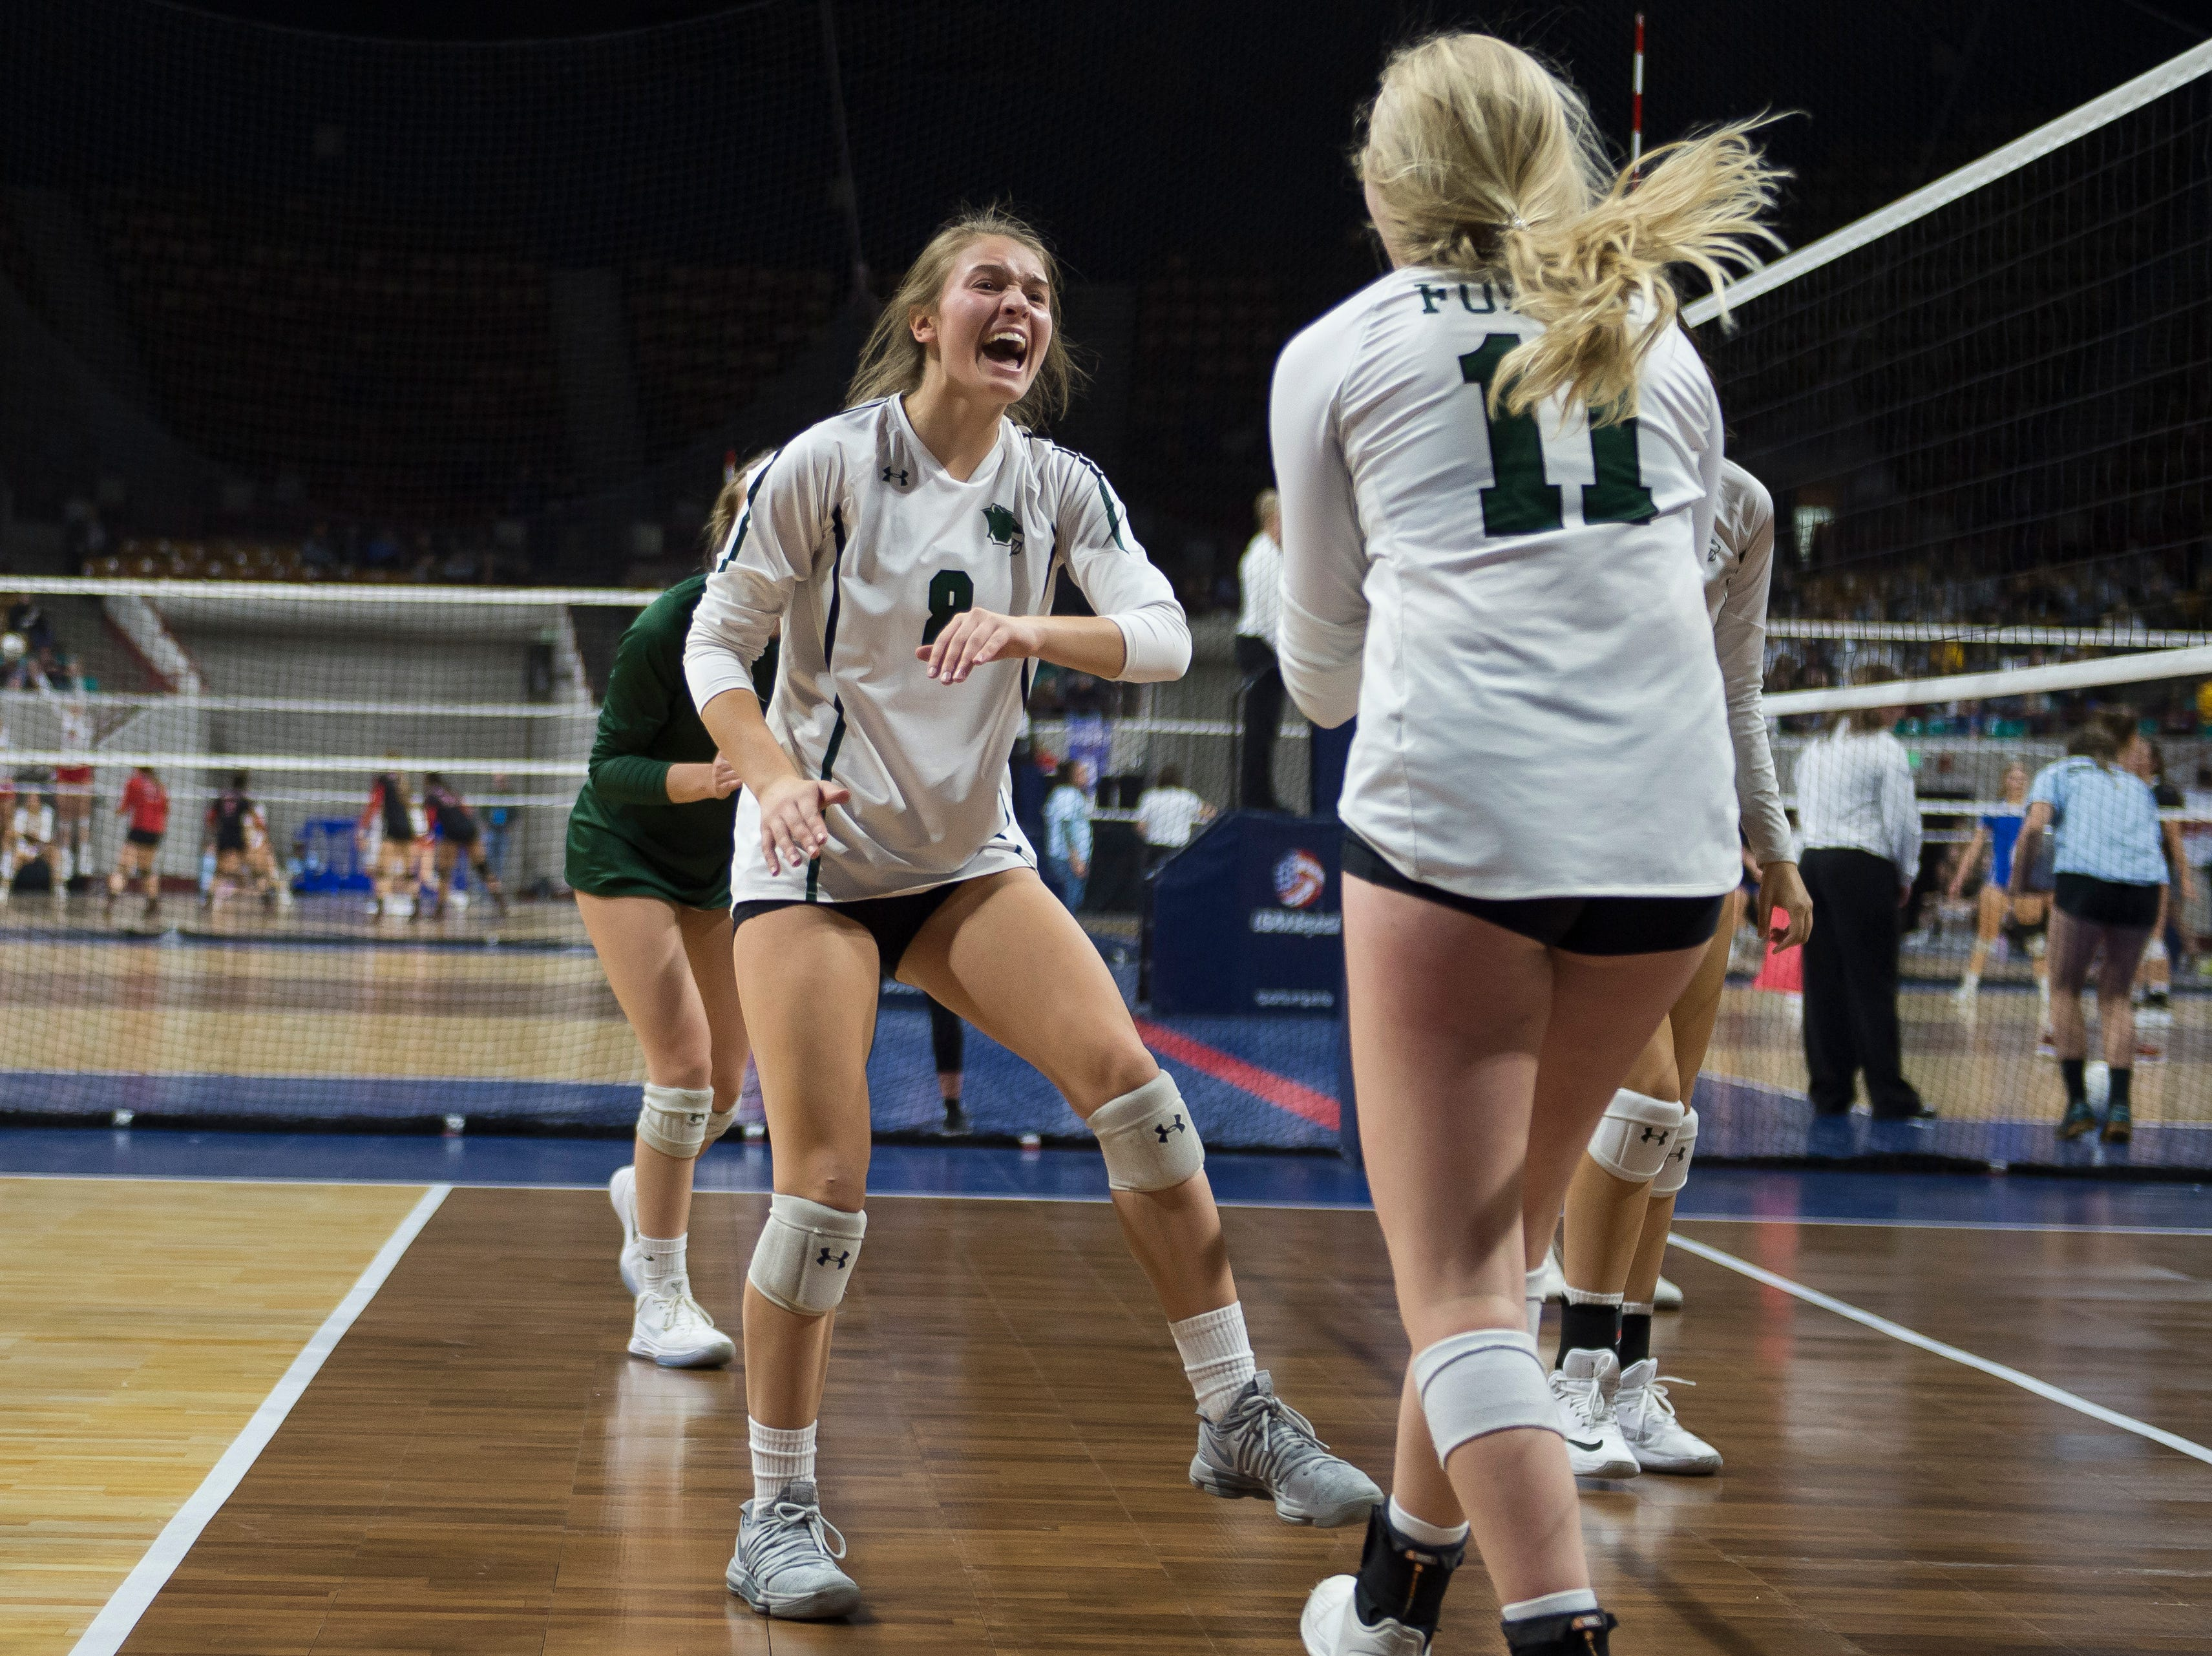 Fossil Ridge High School junior Rachel Lambrecht (8) cheers with sophomore Peyton Dunn (11) after a point against Windsor High School on Thursday, Nov. 8, 2018, at the Denver Coliseum in Denver, Colo.